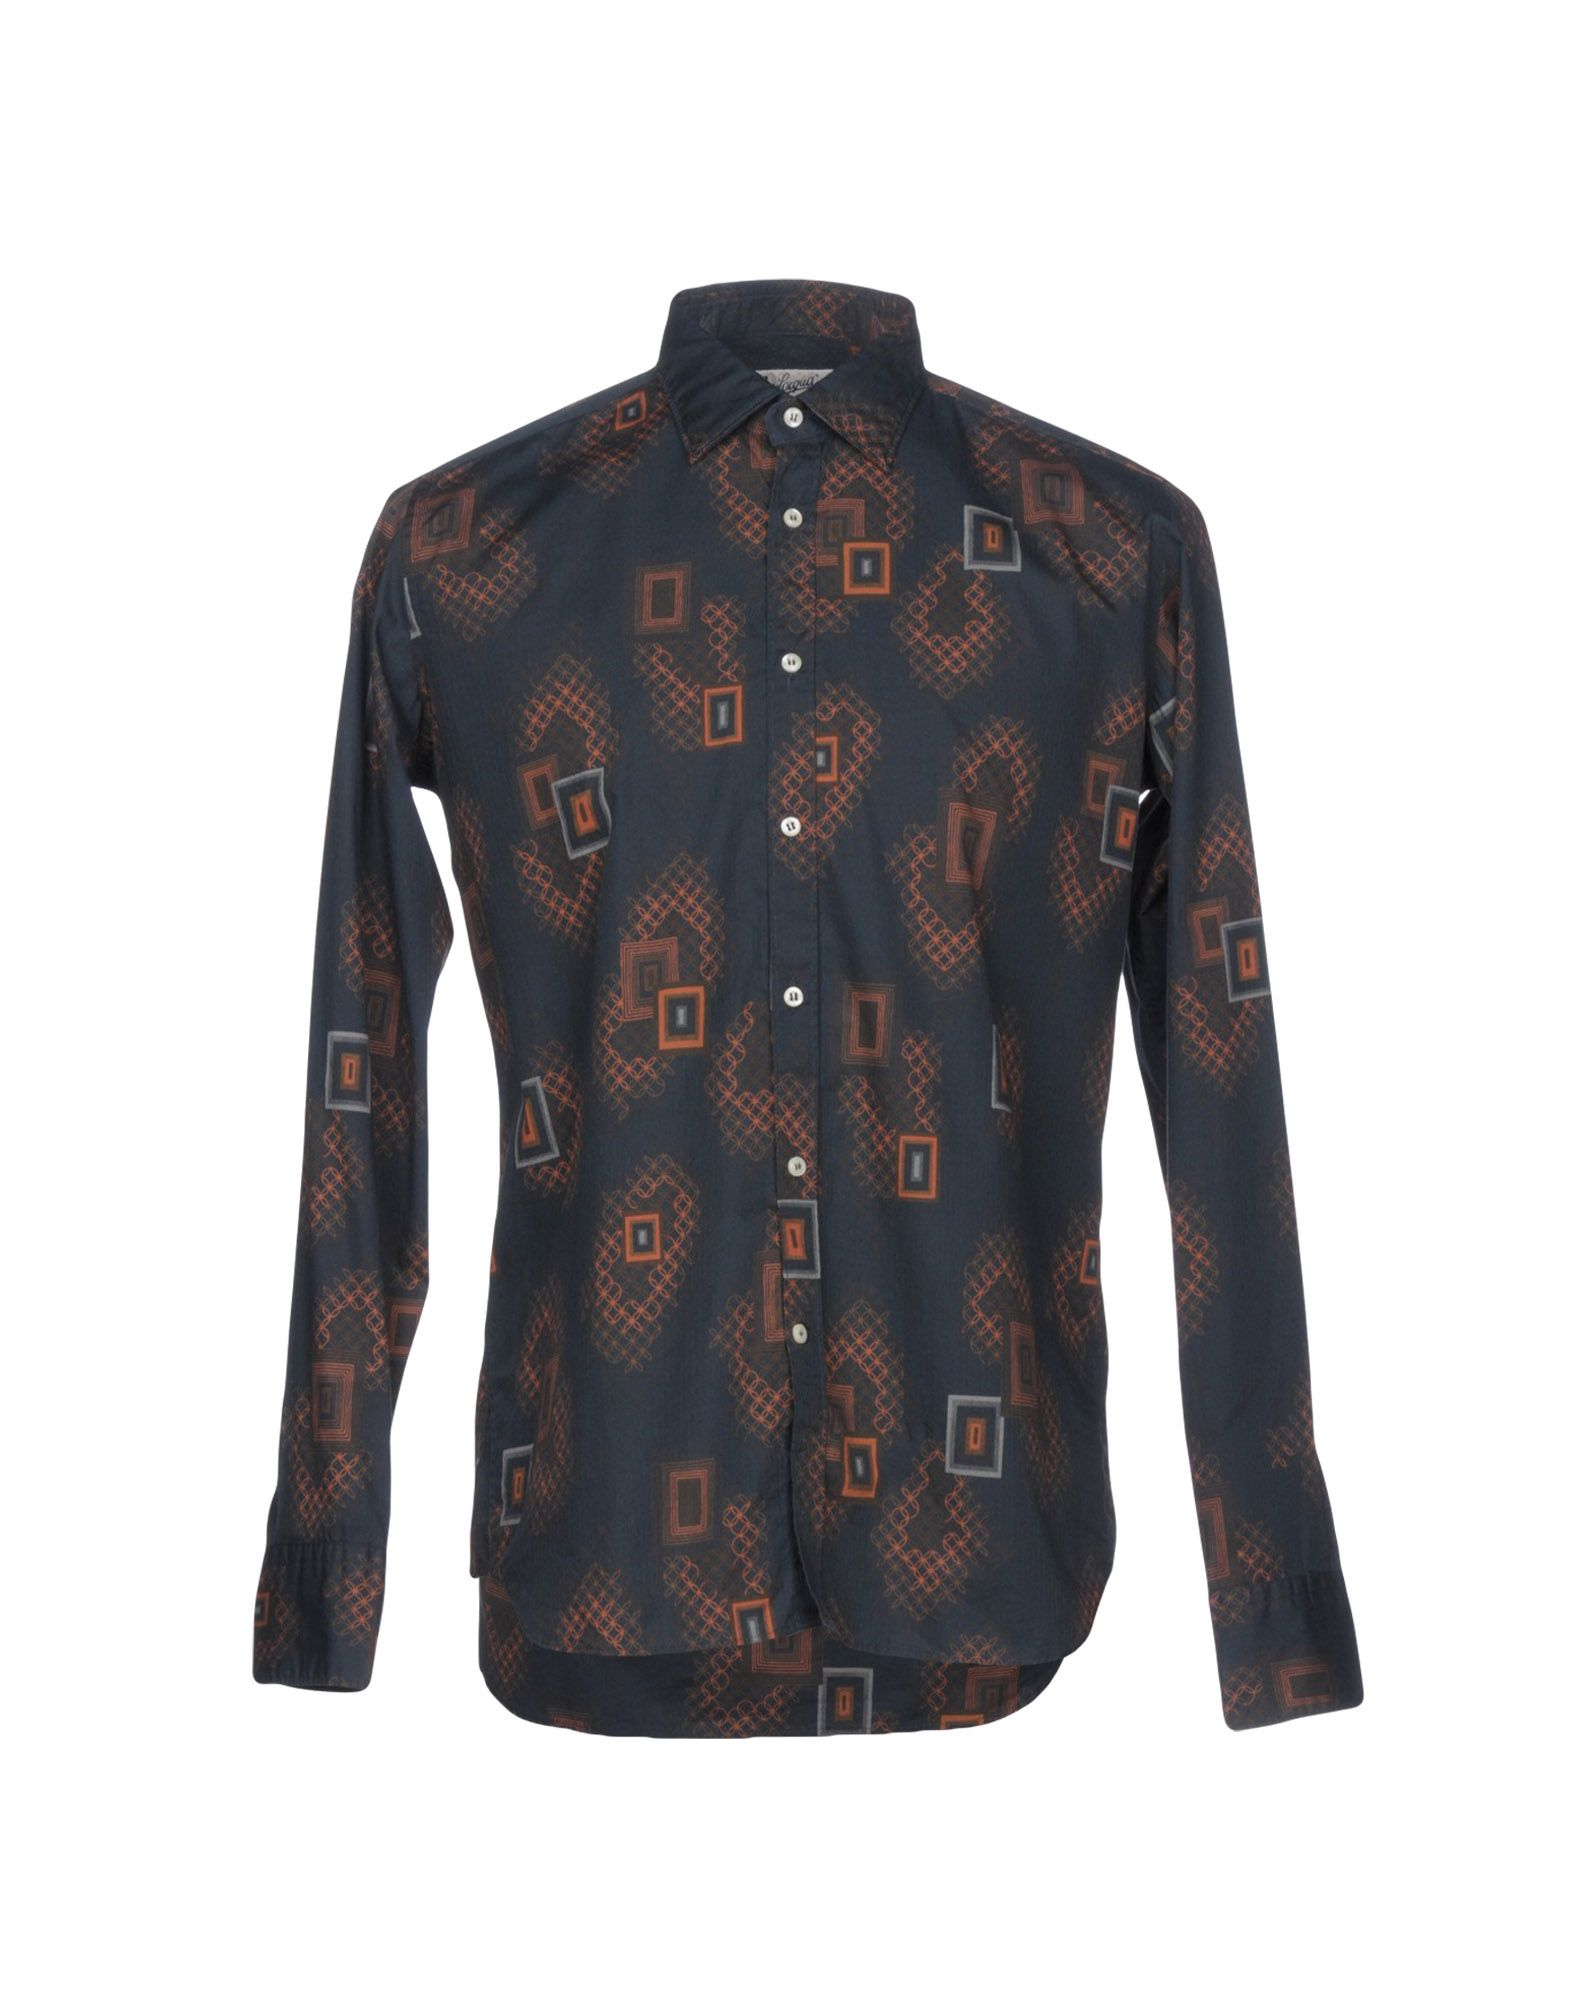 BEVILACQUA Patterned Shirt in Dark Blue